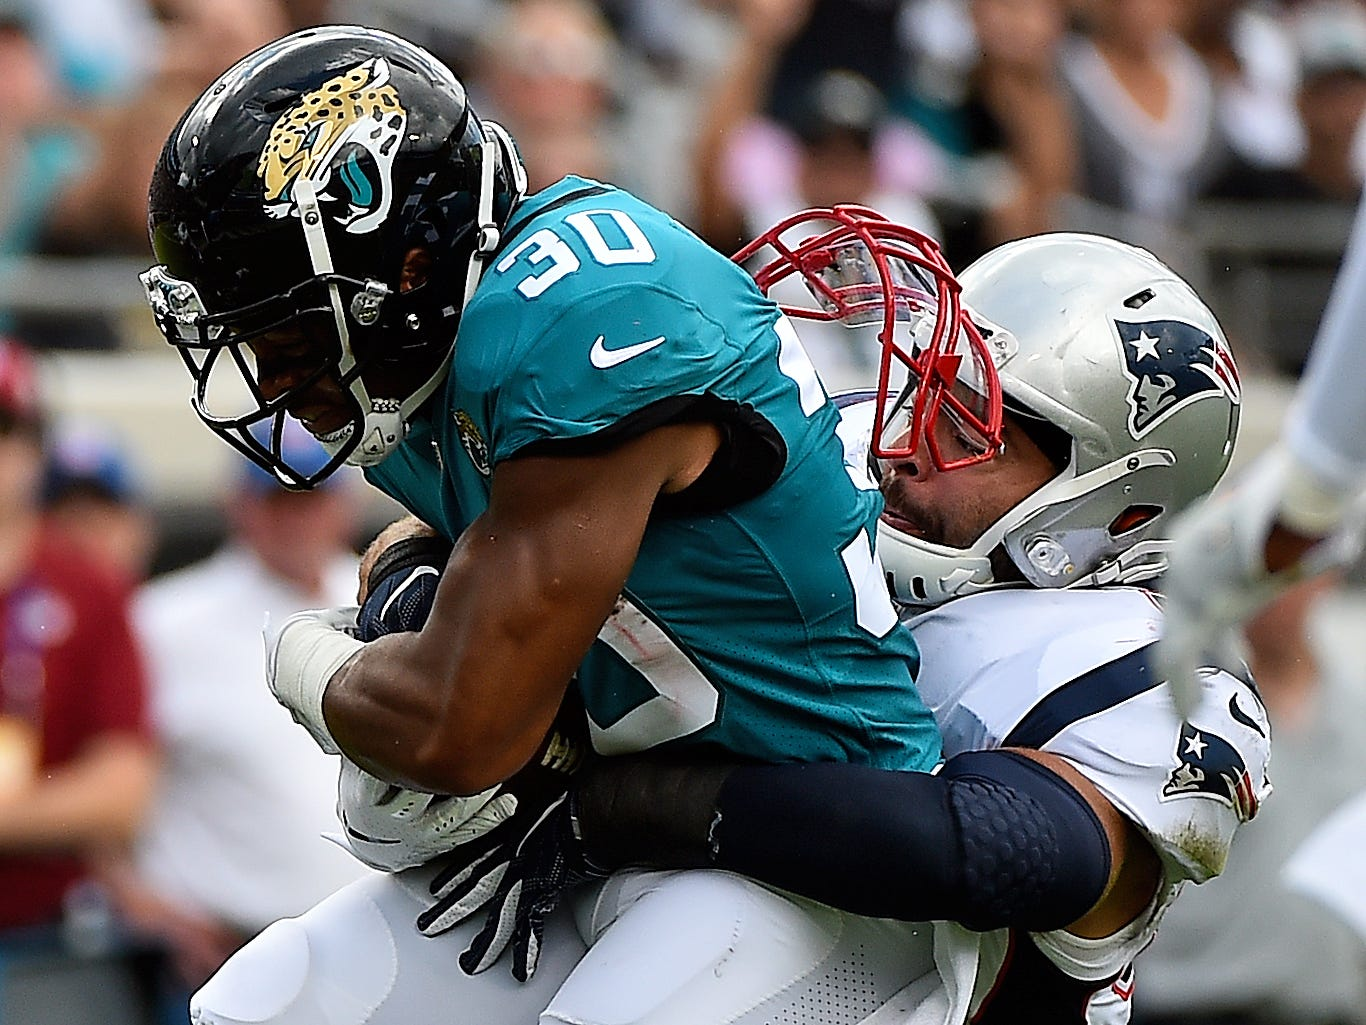 Sep 16, 2018; Jacksonville, FL, USA; New England Patriots linebacker Kyle Van Noy (53) tackles Jacksonville Jaguars running back Corey Grant (30) during the first half at TIAA Bank Field. Mandatory Credit: Jasen Vinlove-USA TODAY Sports